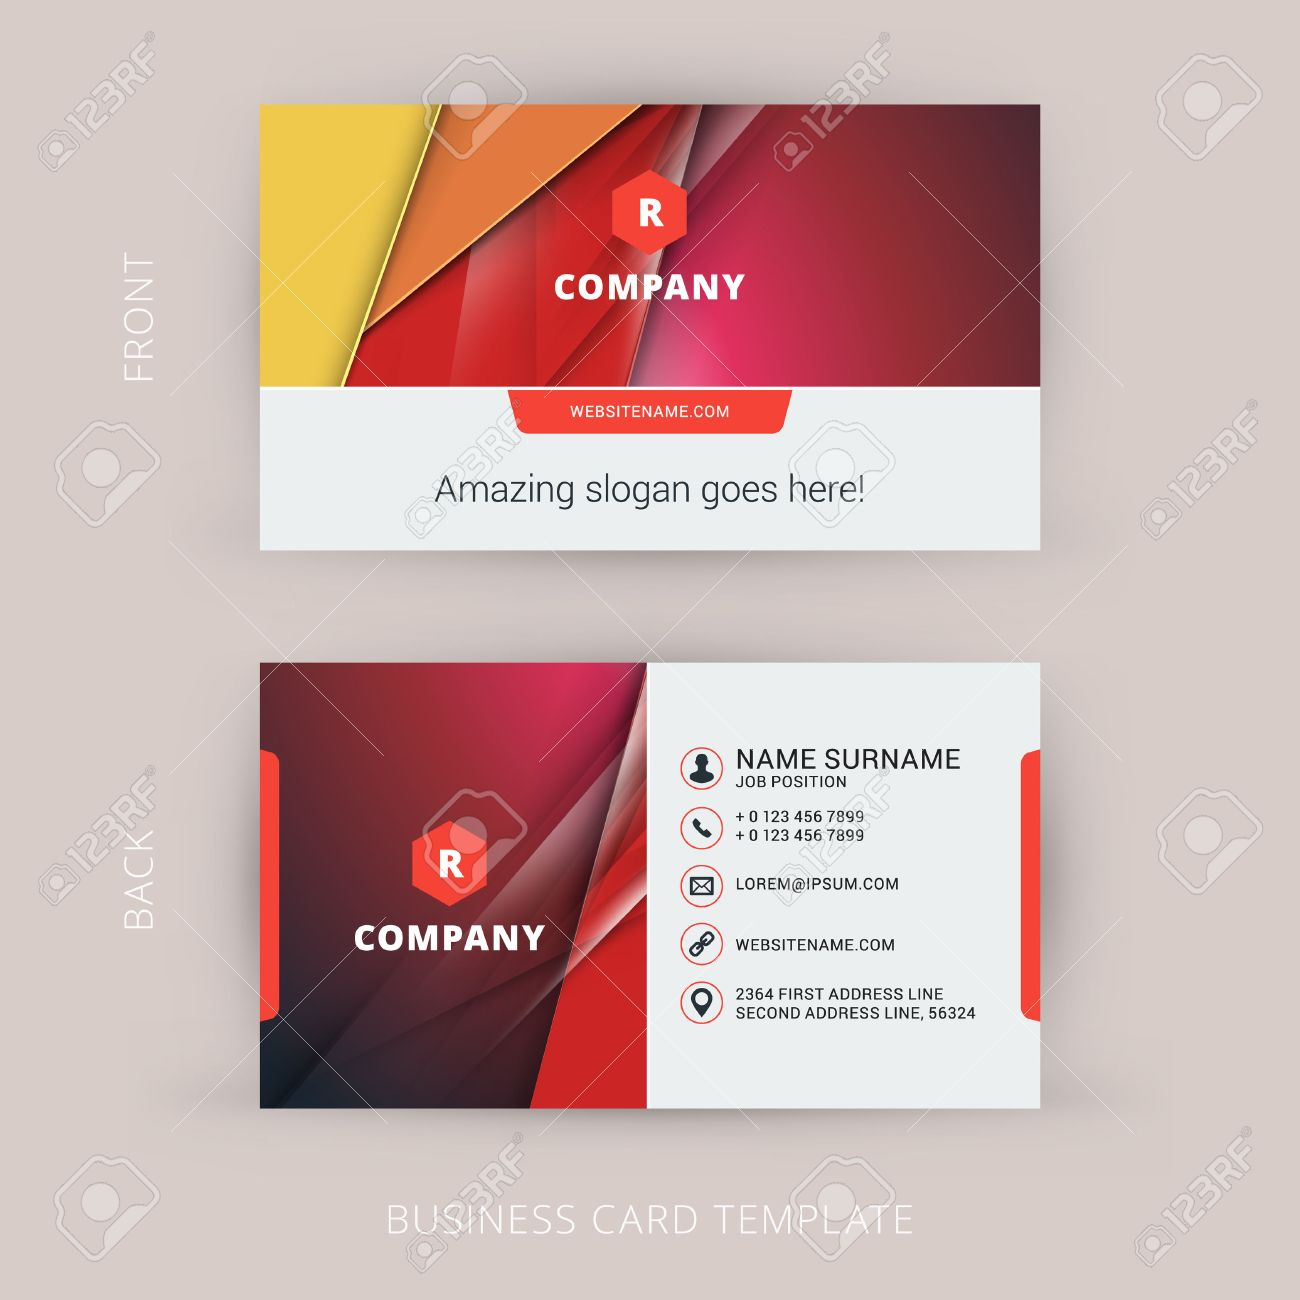 Creative And Clean Business Card Template With Material Design - Business card templates designs